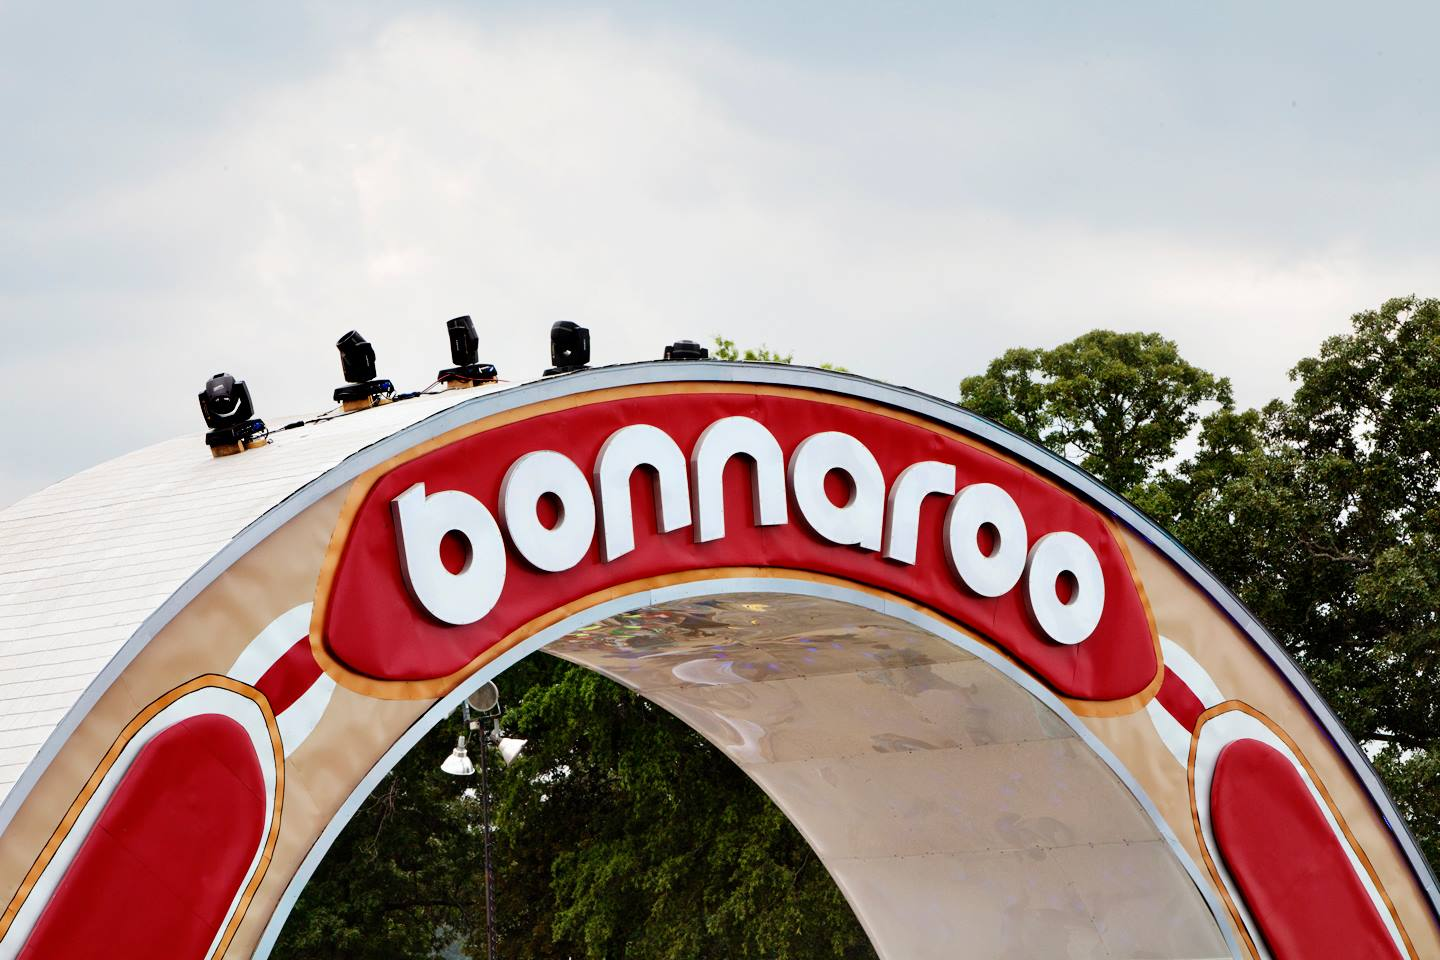 In Shadow of new Tennessee Voter Registration Law, HeadCount sets Voter Registration Record at Bonnaroo